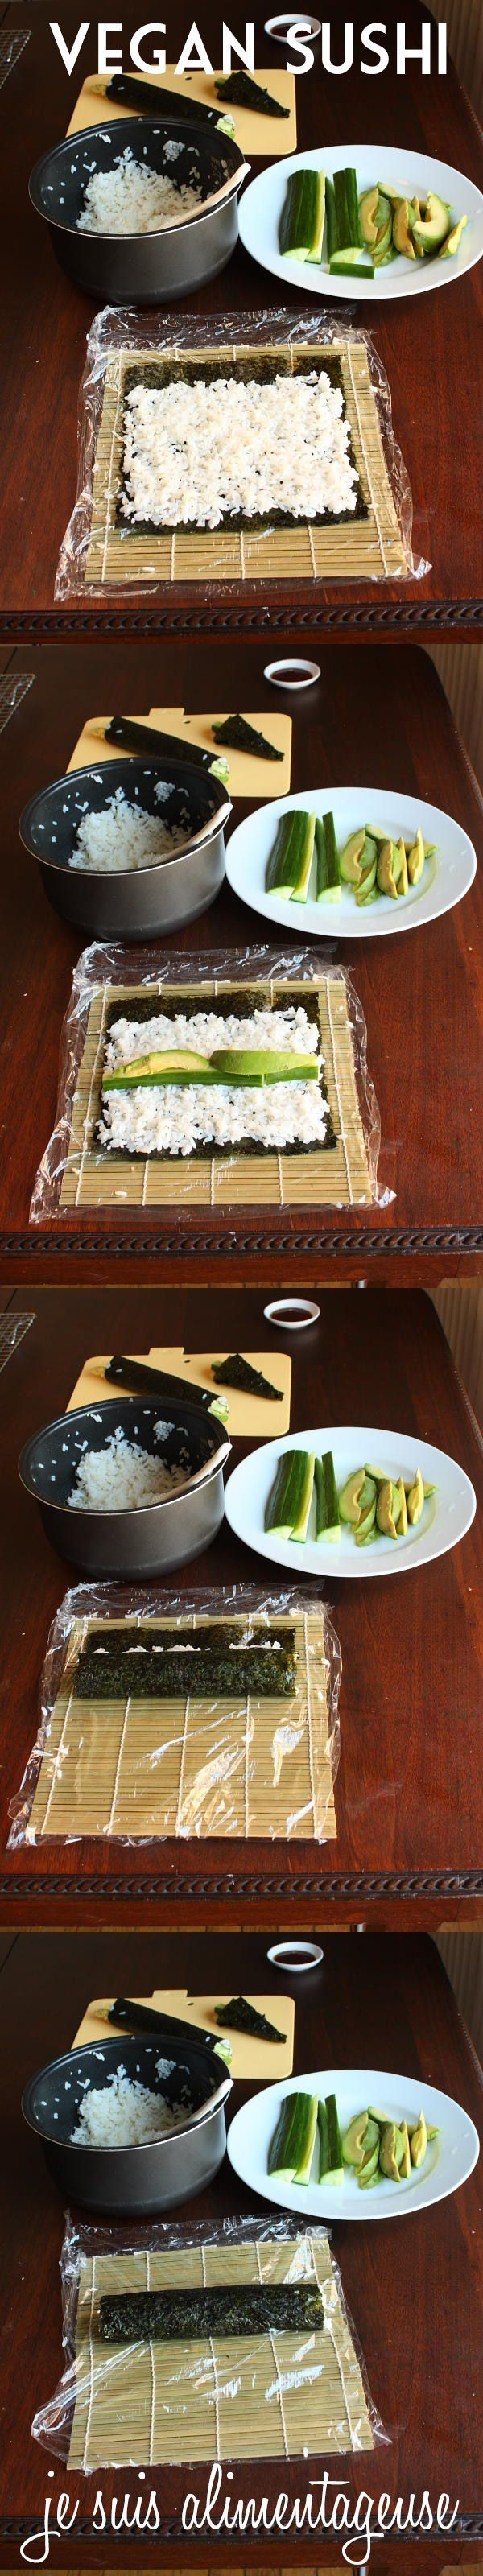 Avocado Cucumber Sushi - How to make sushi step-by-step at home!